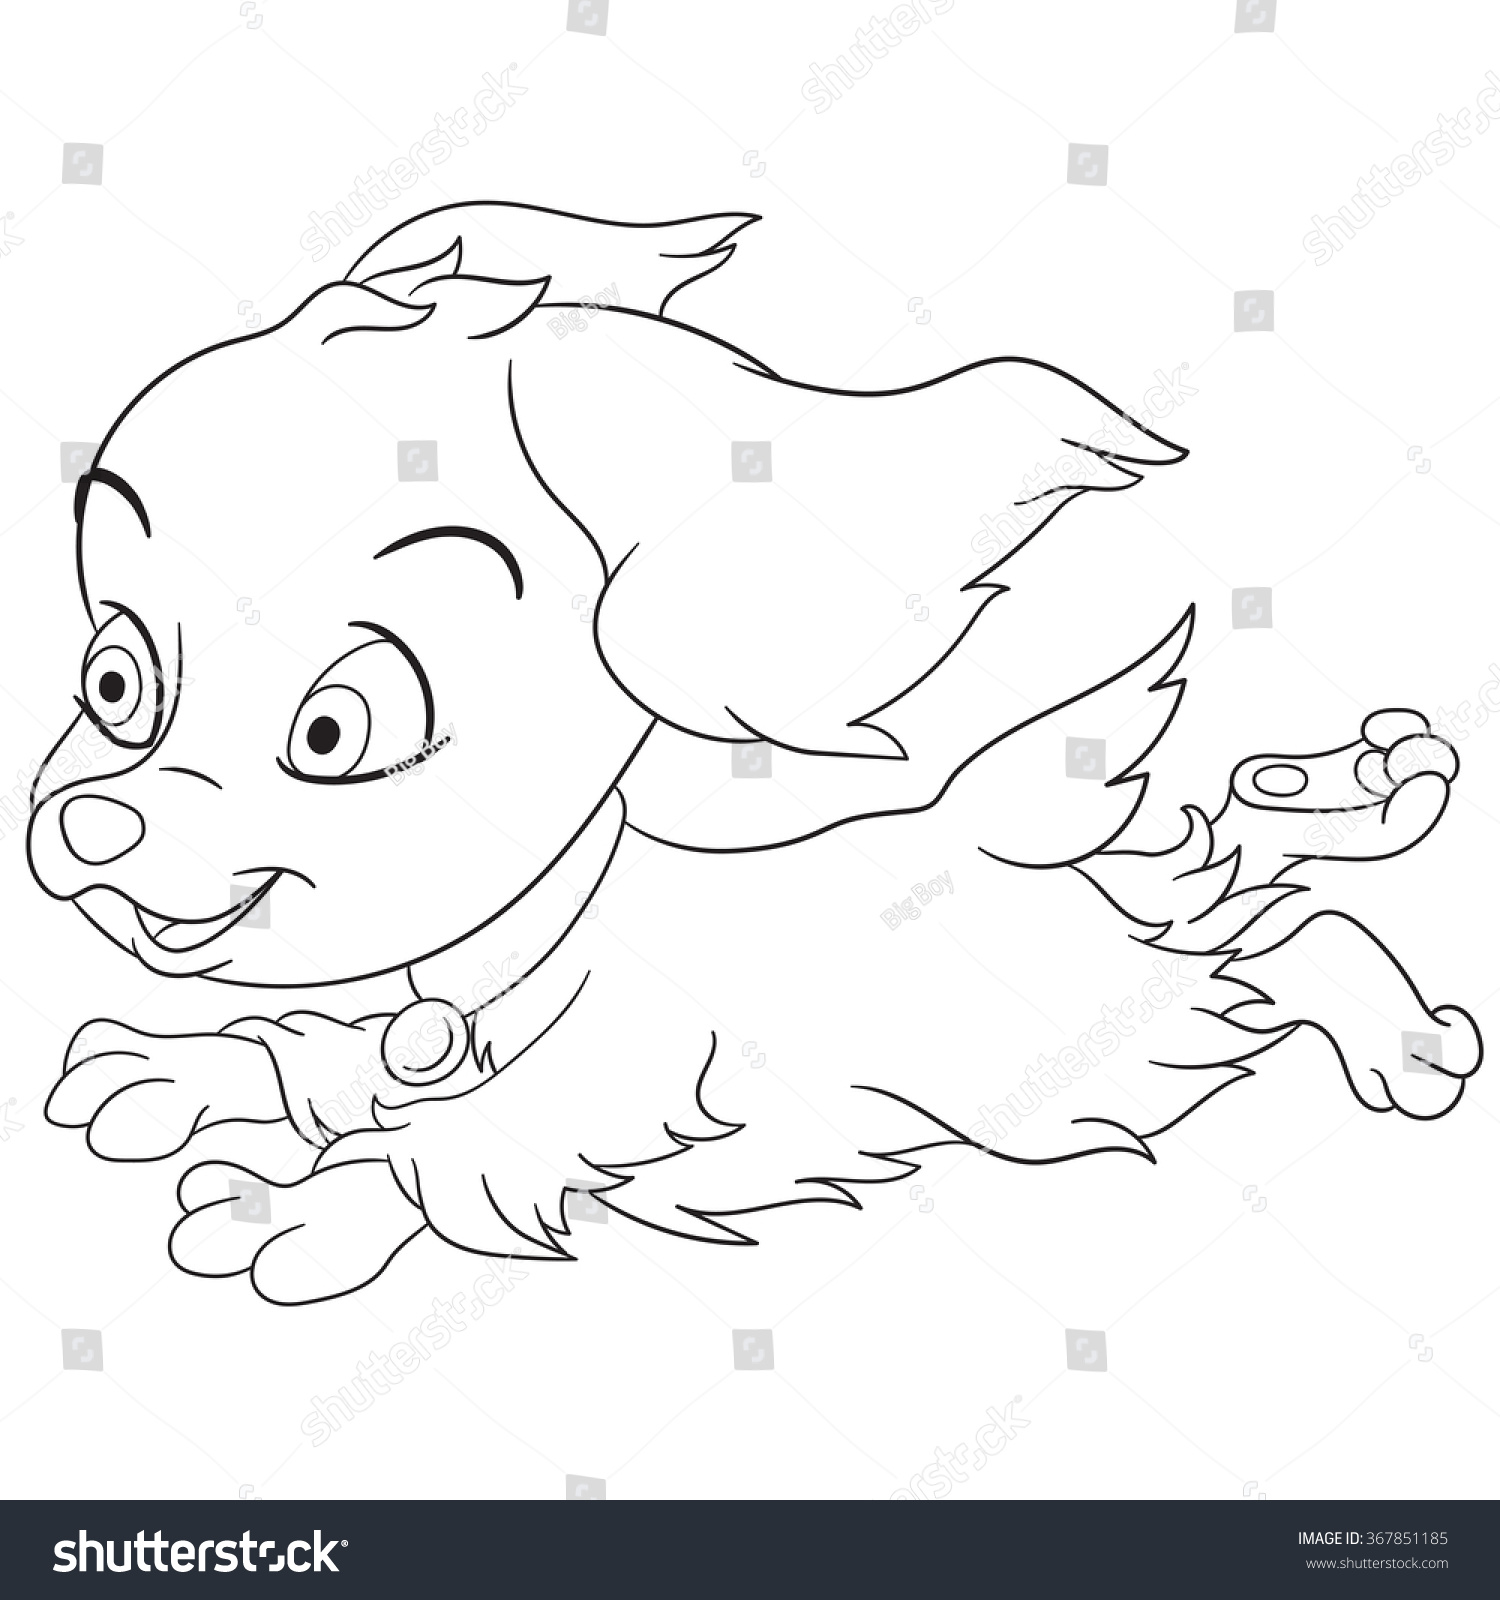 Coloring Page Cartoon Spaniel Puppy Dog Stock Vector Royalty Free